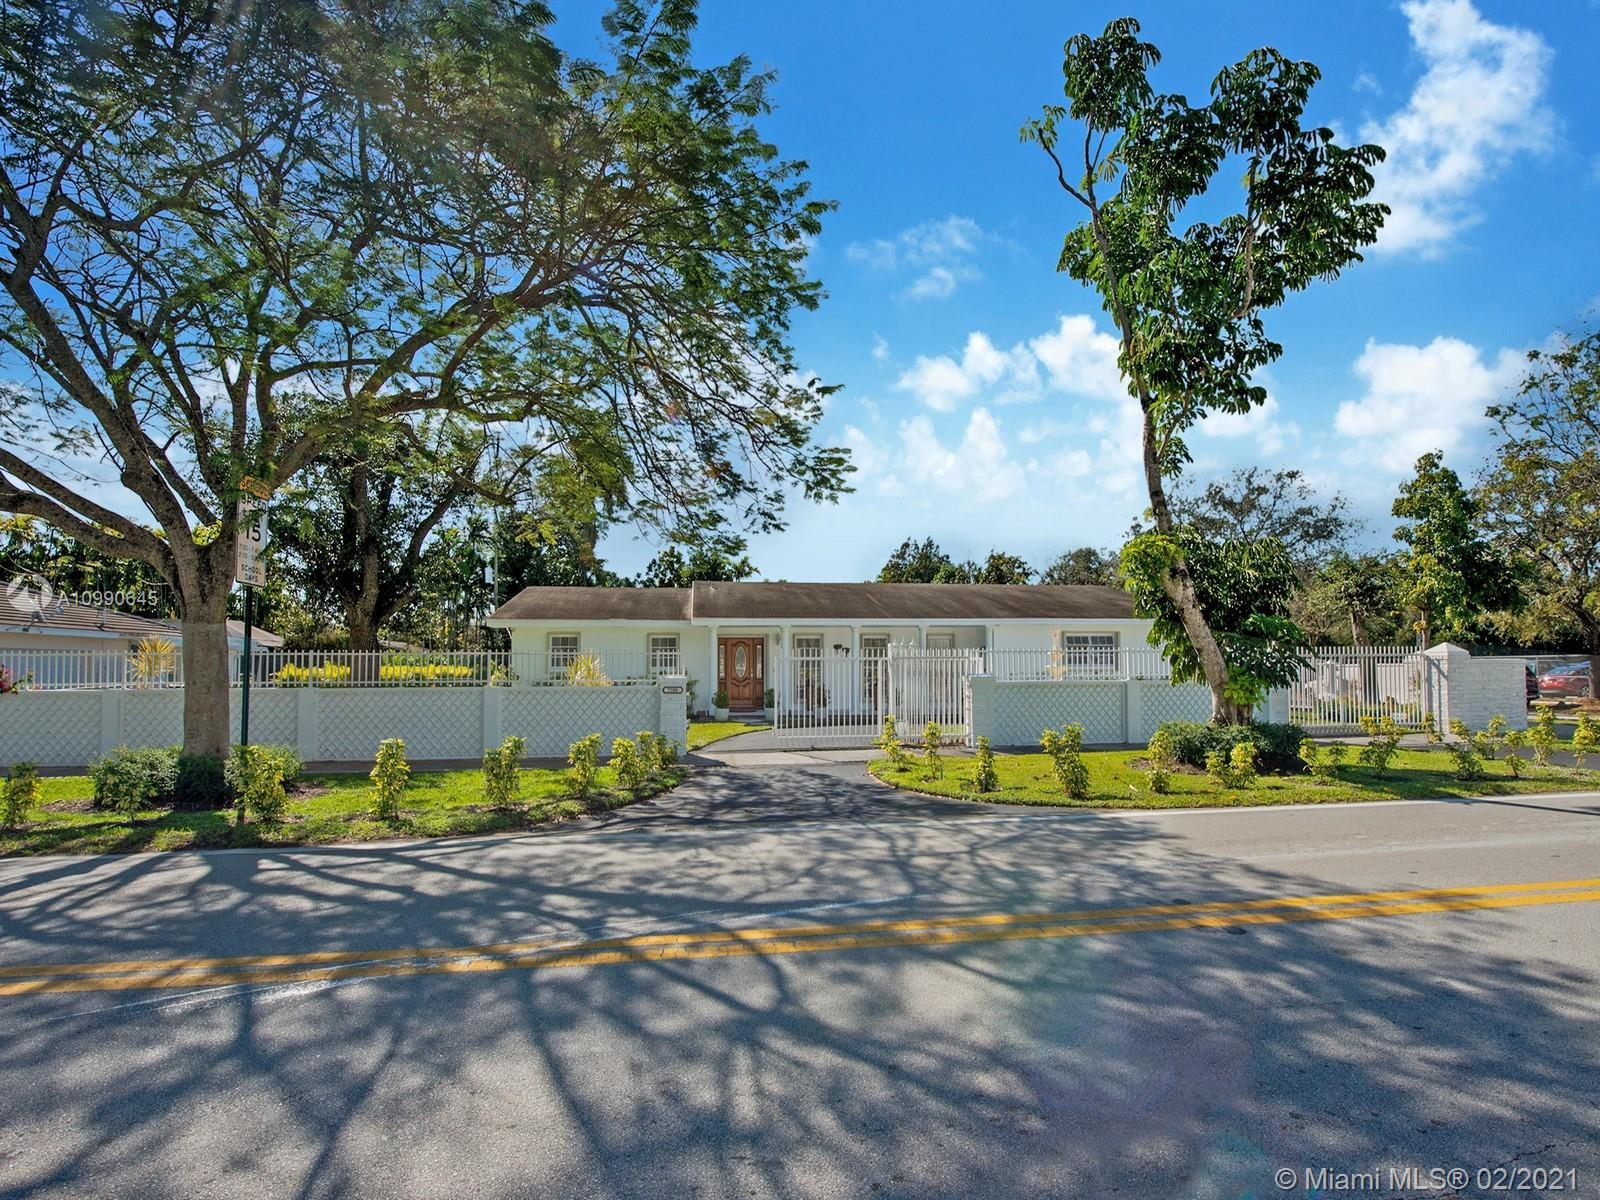 Meticulously cared for and upgraded home. Situated on a manicured gated corner lot with a circular d